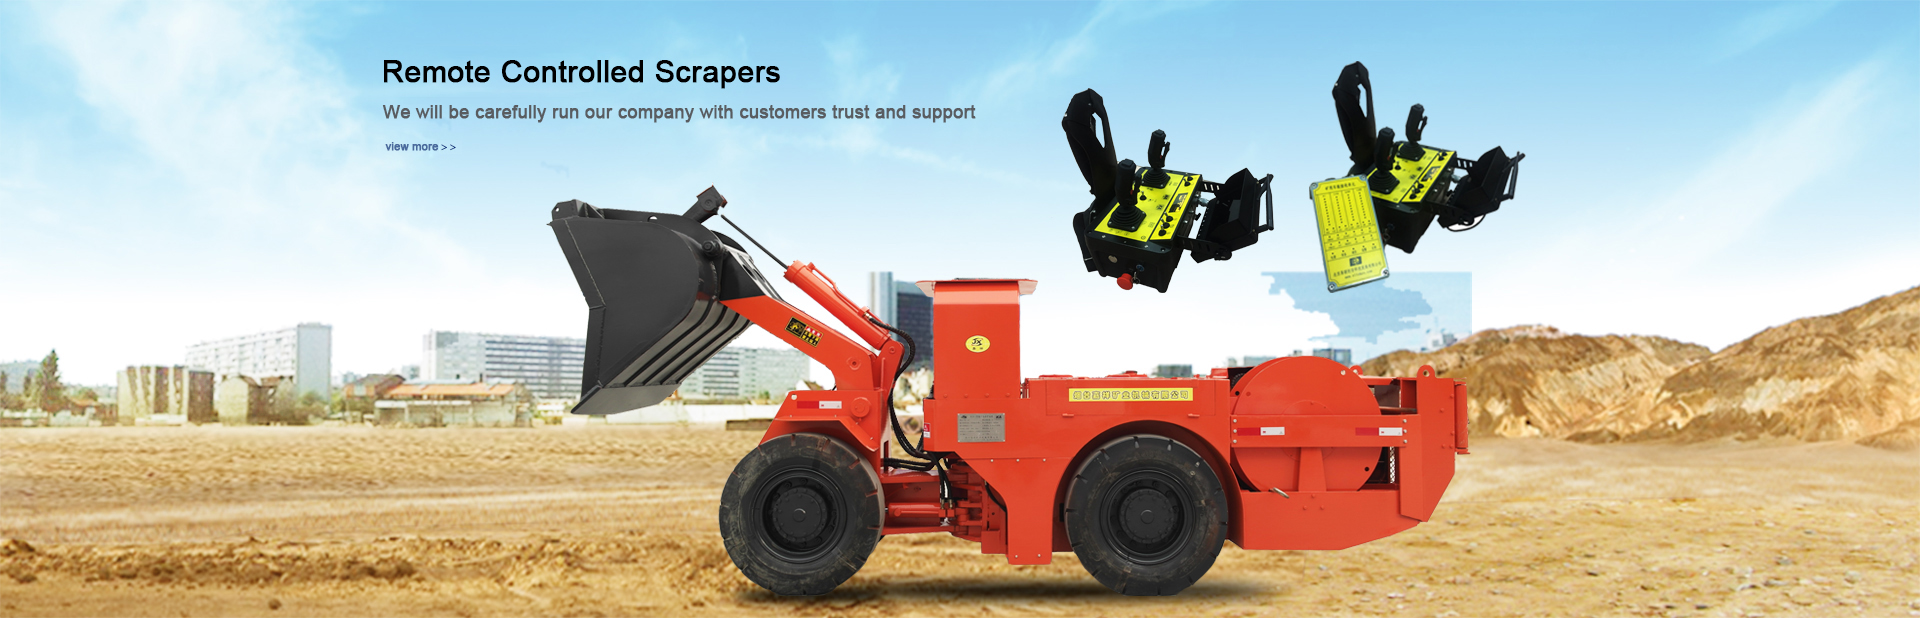 Remote Controlled Scrapers